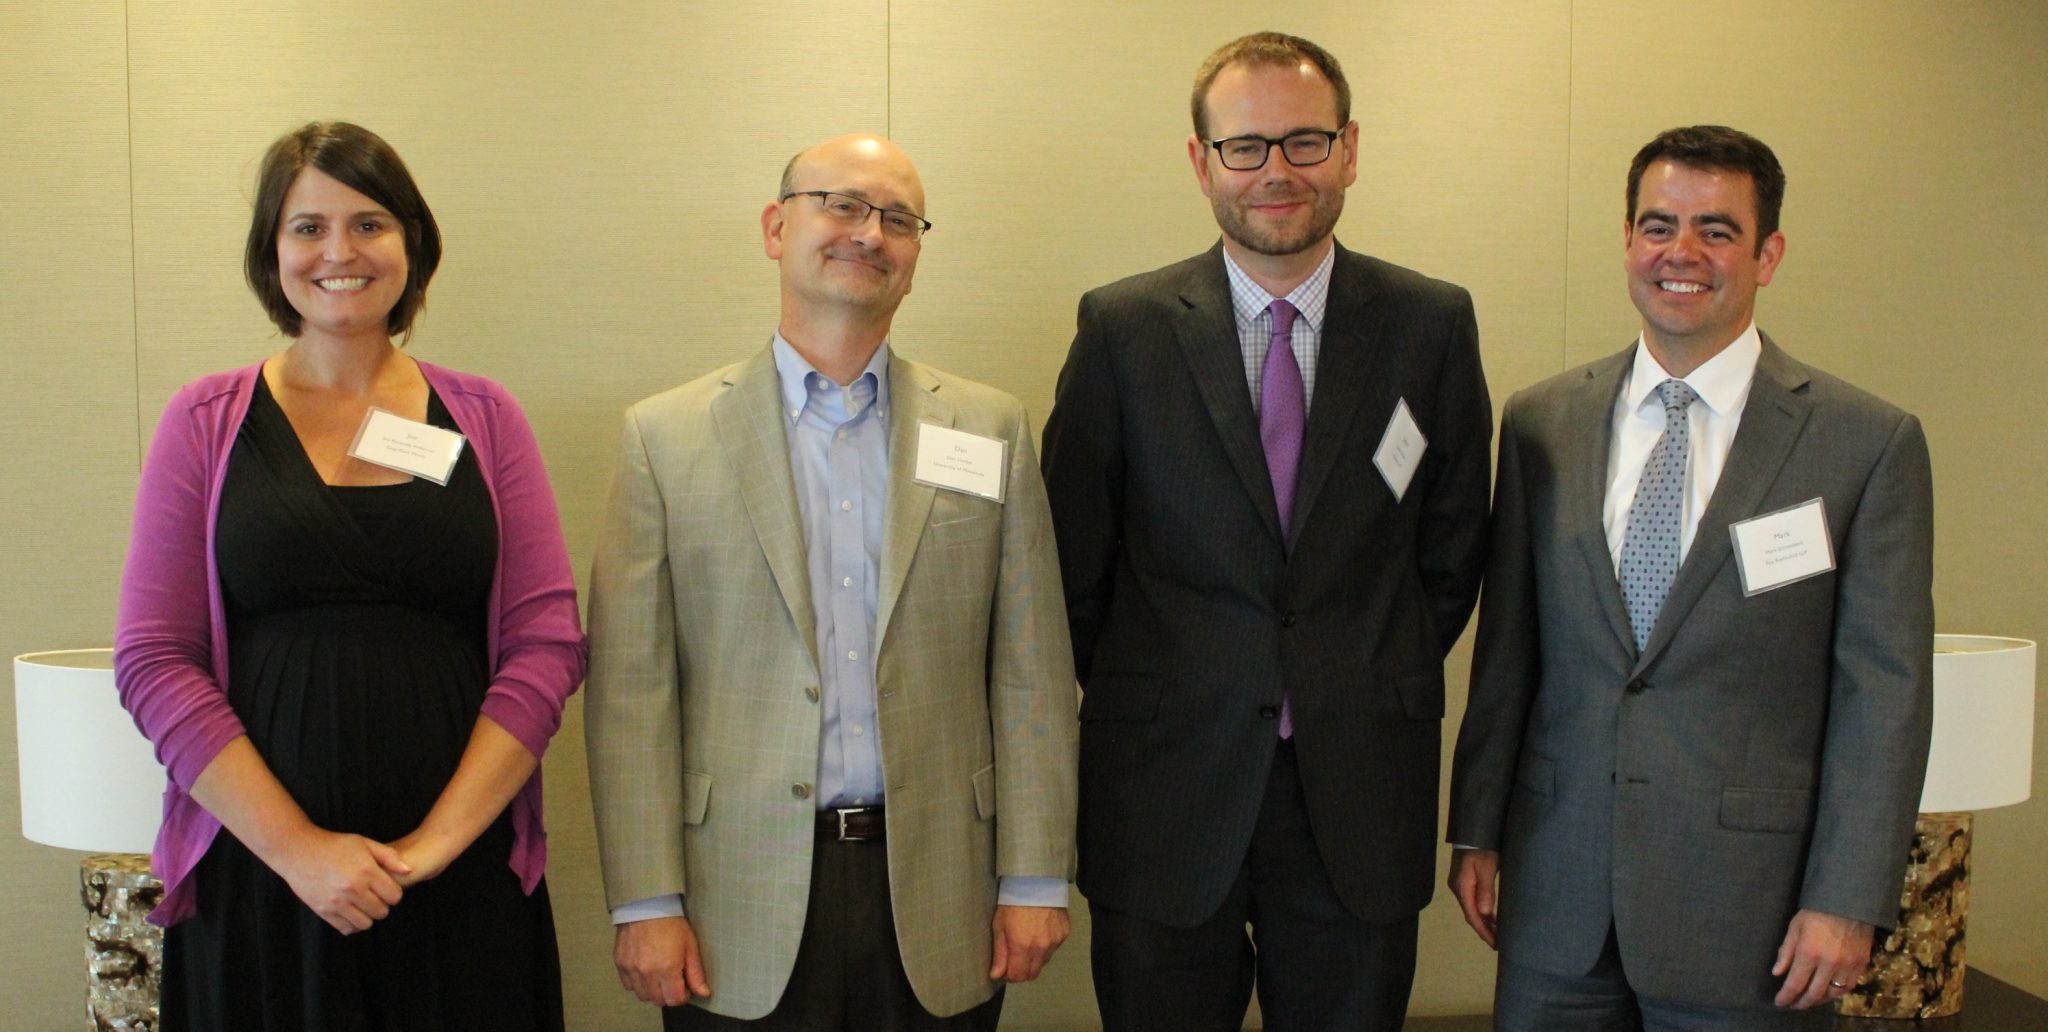 L to R photo interior of Joy Anderson, Dan Herber, Julian Zebot and Mark Schneebeck smiling in business attire